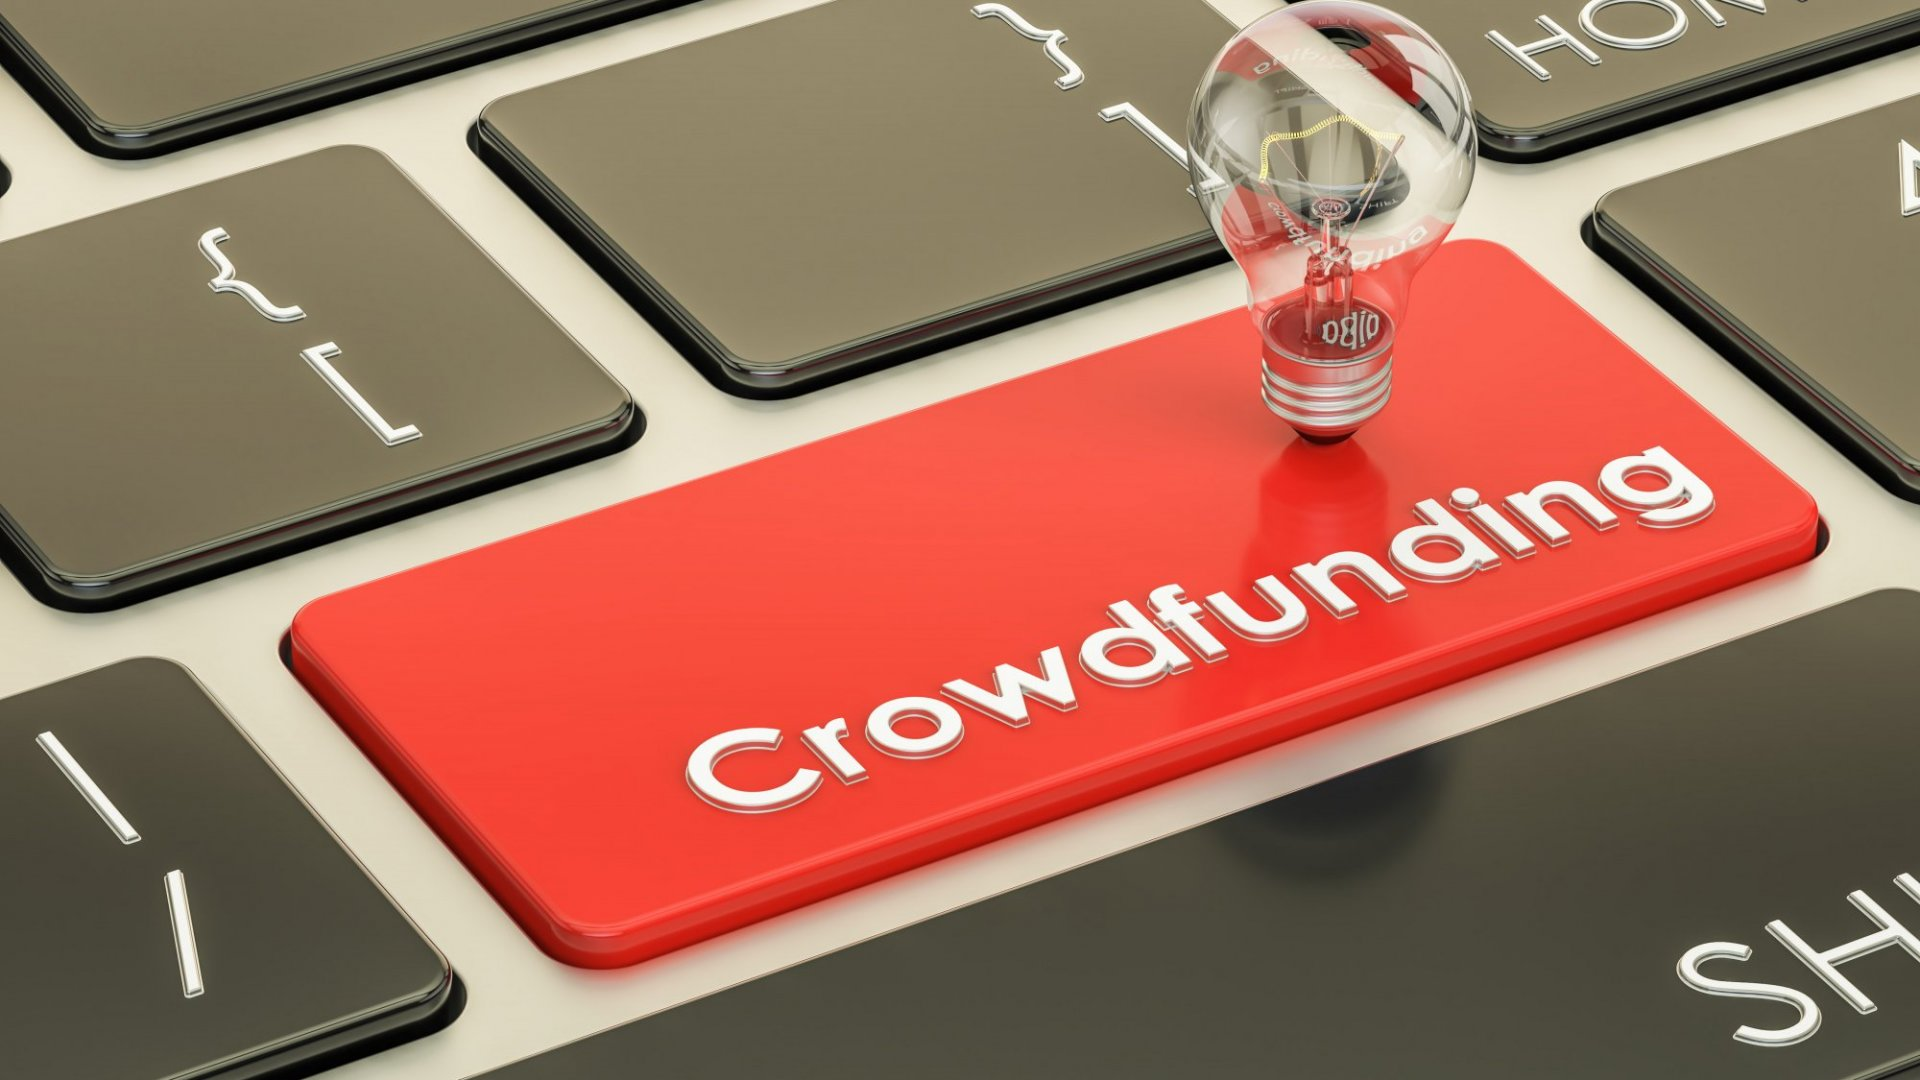 Here's What You Can Learn About Crowdfunding Backers, According to Recent Data